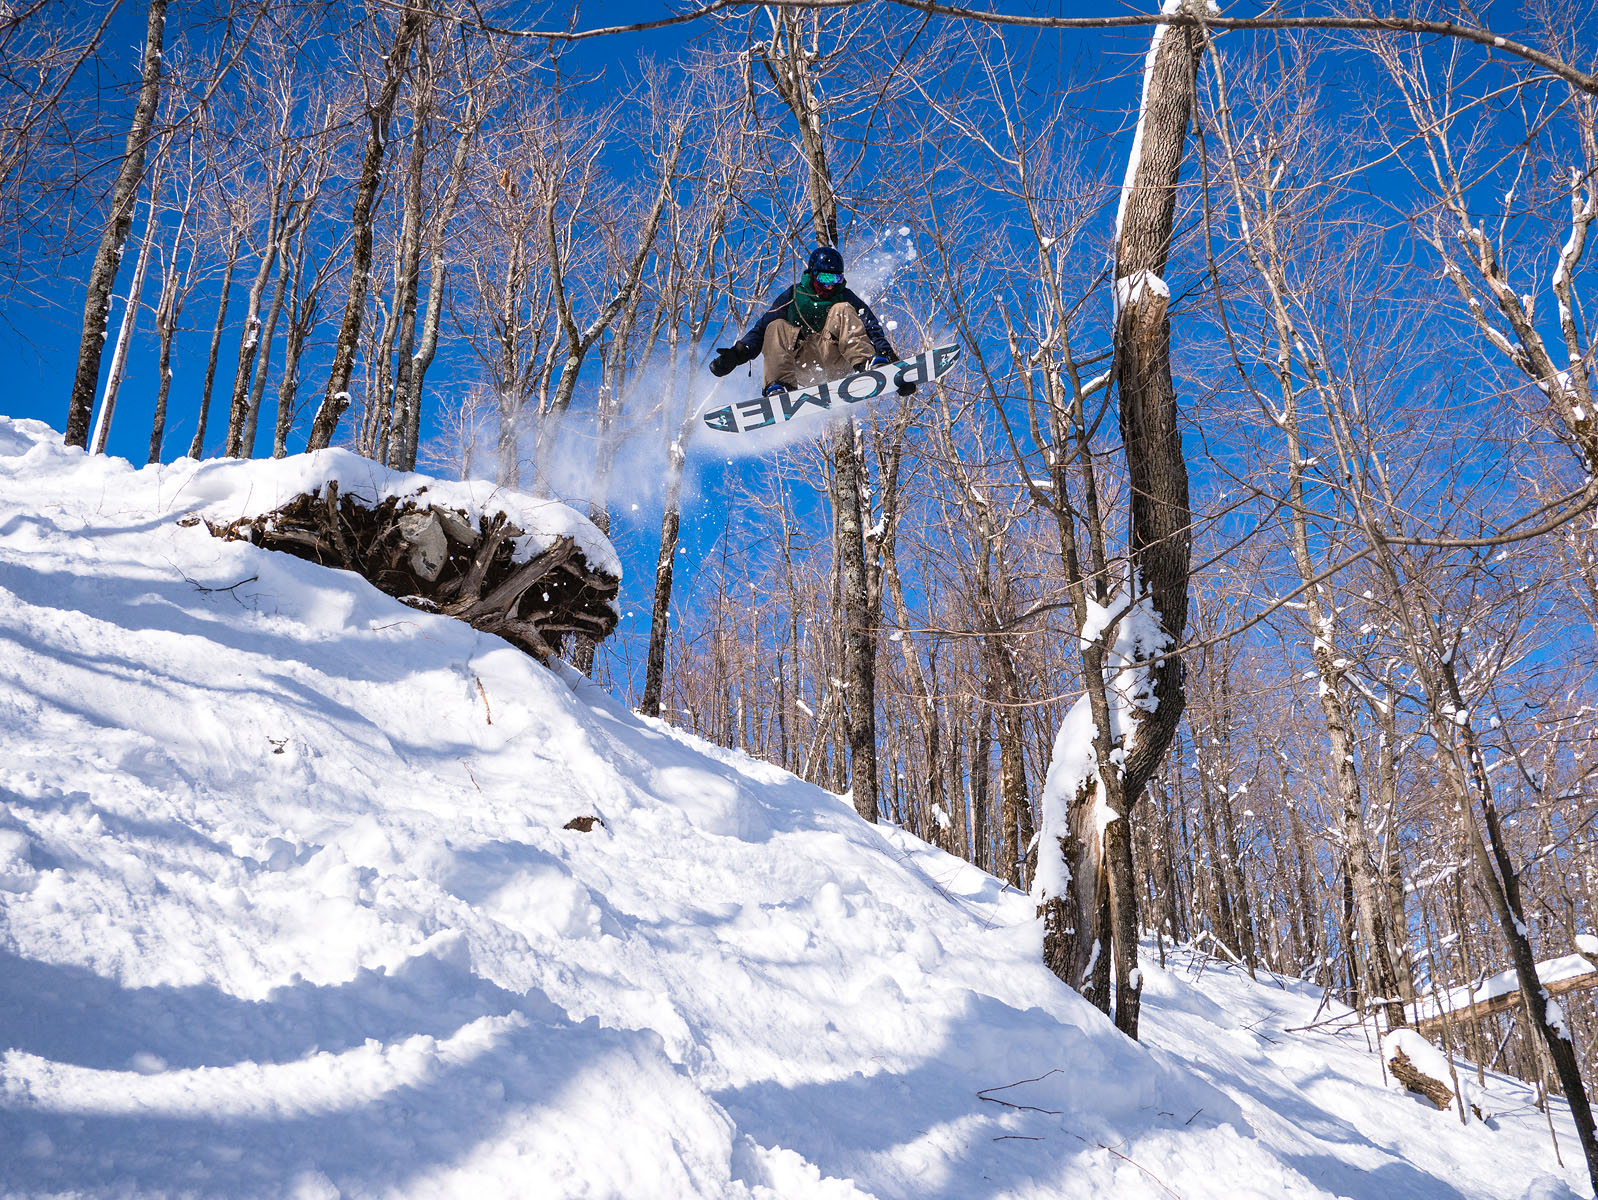 12-60 G is so darn flexible, it can catch a snowboarder jumping off.